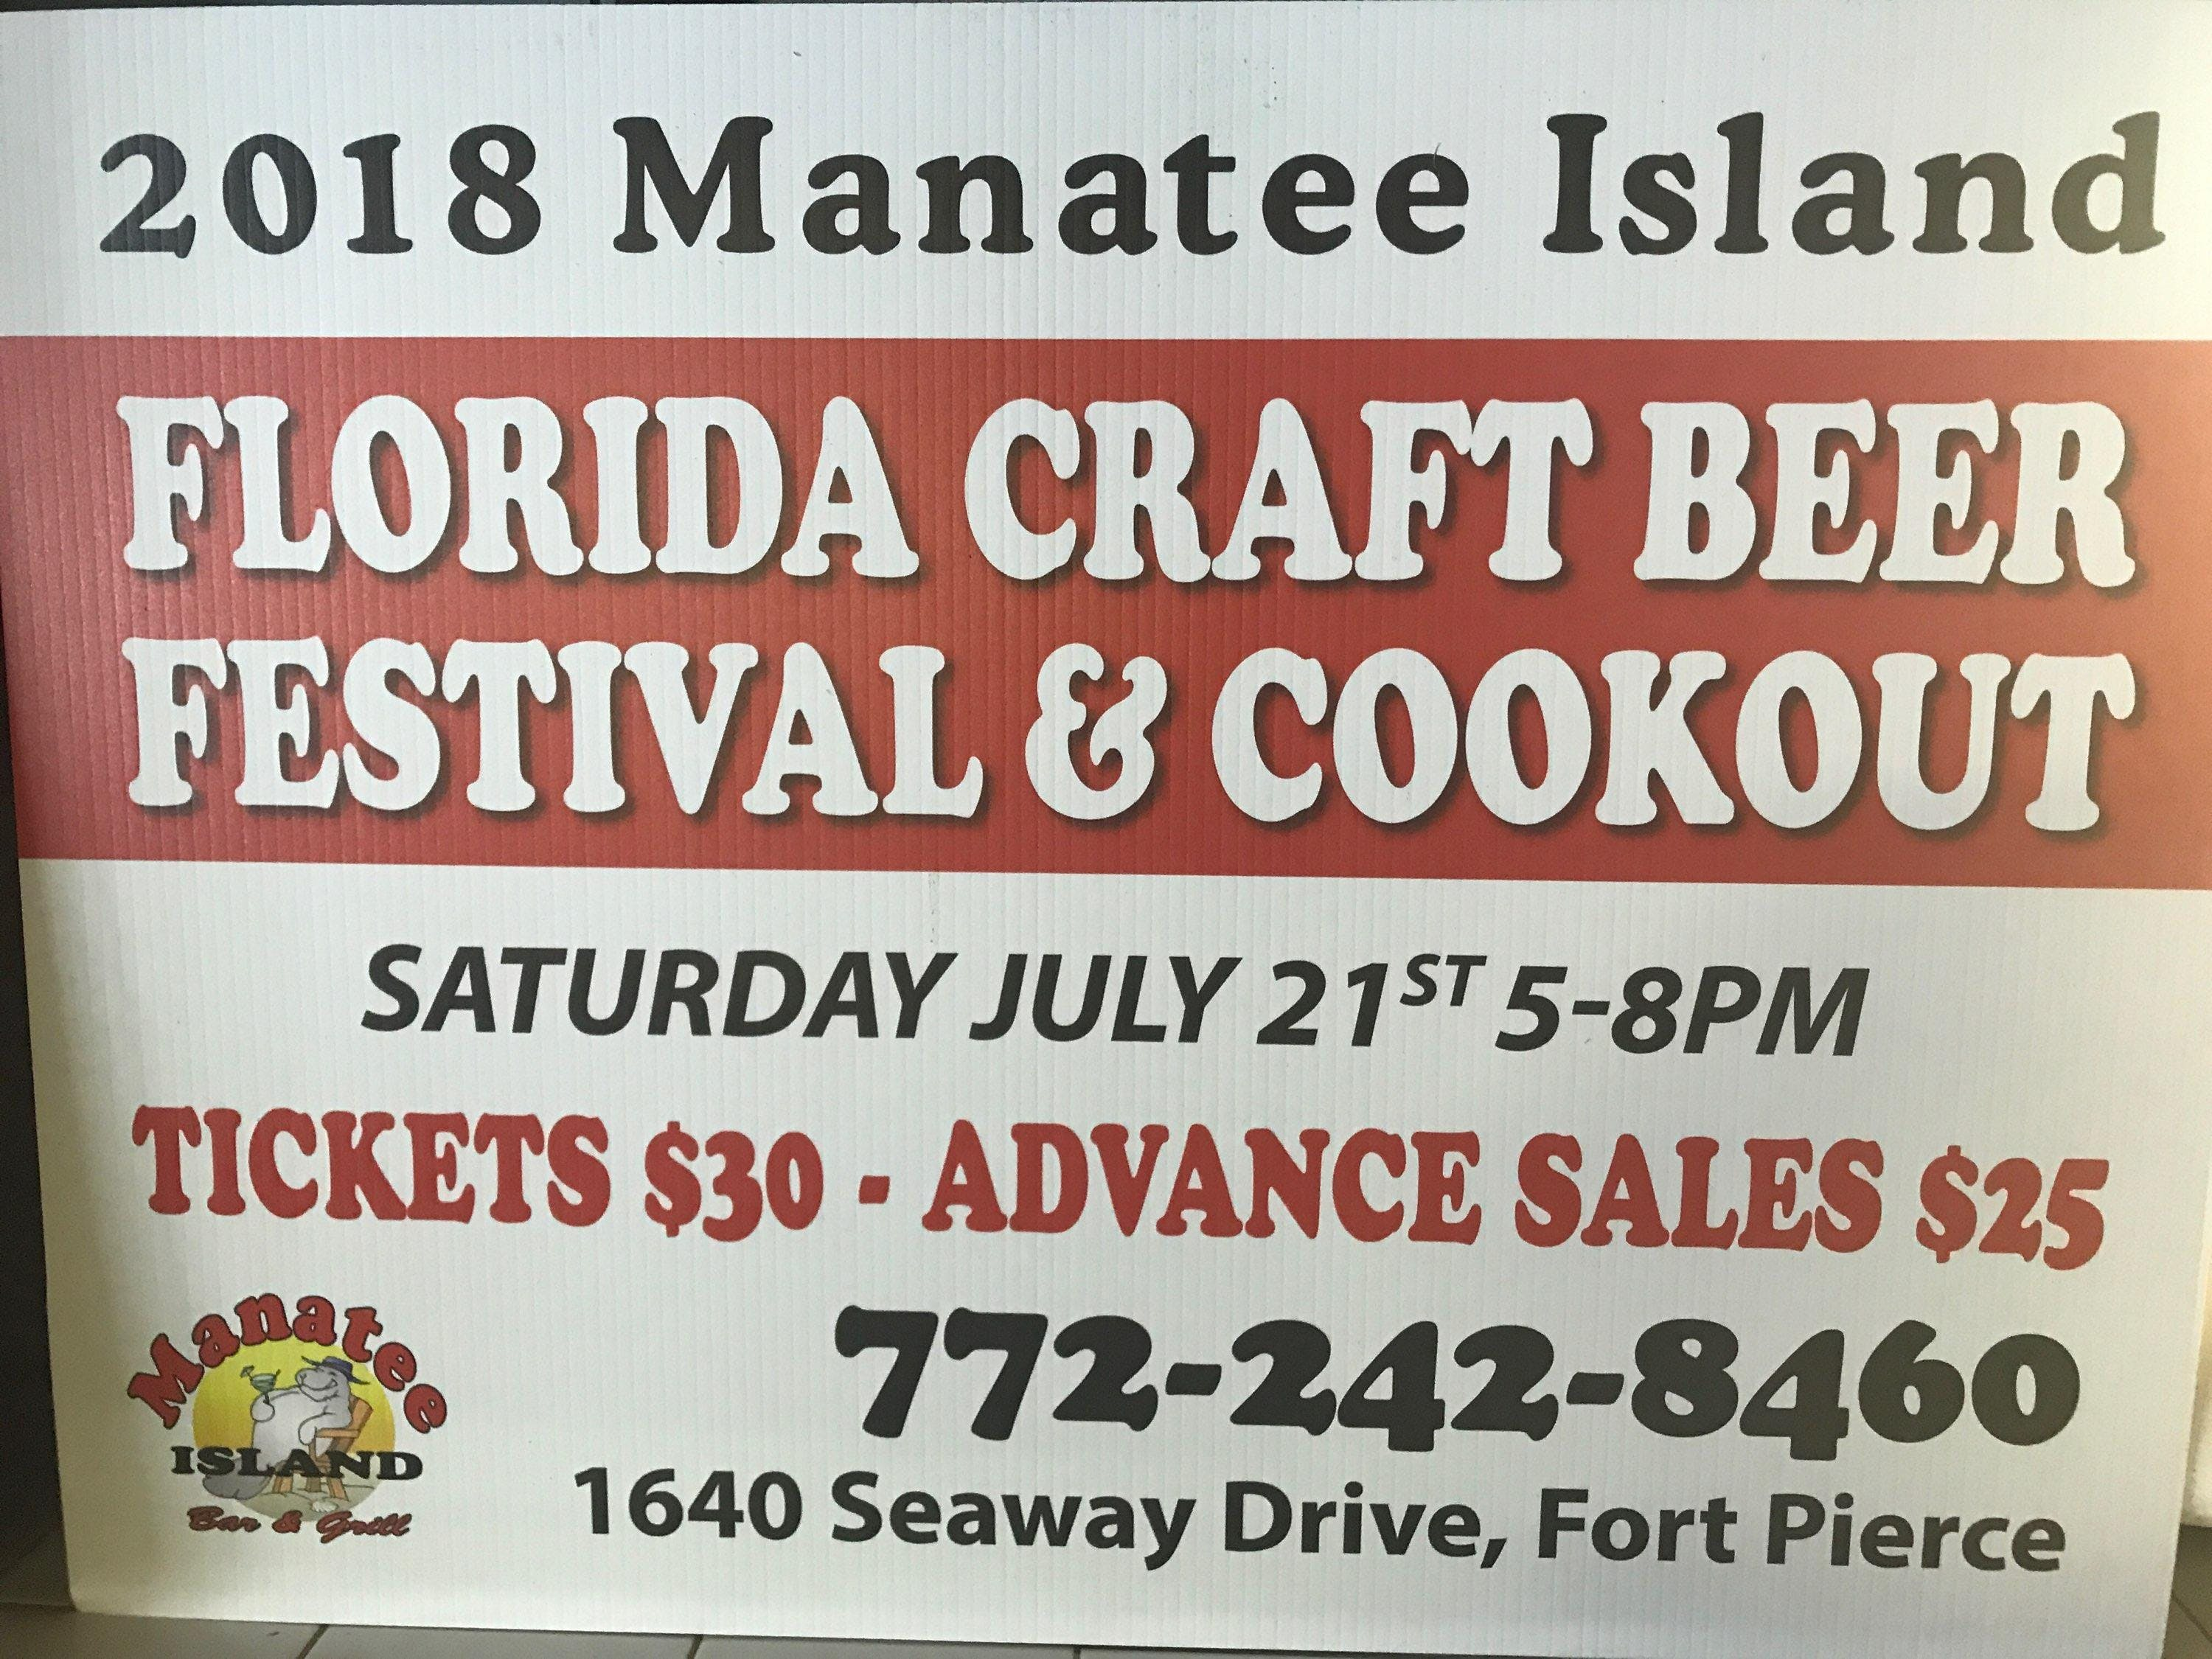 2018 Manatee Island Craft Beer Fest and cookout in Fort